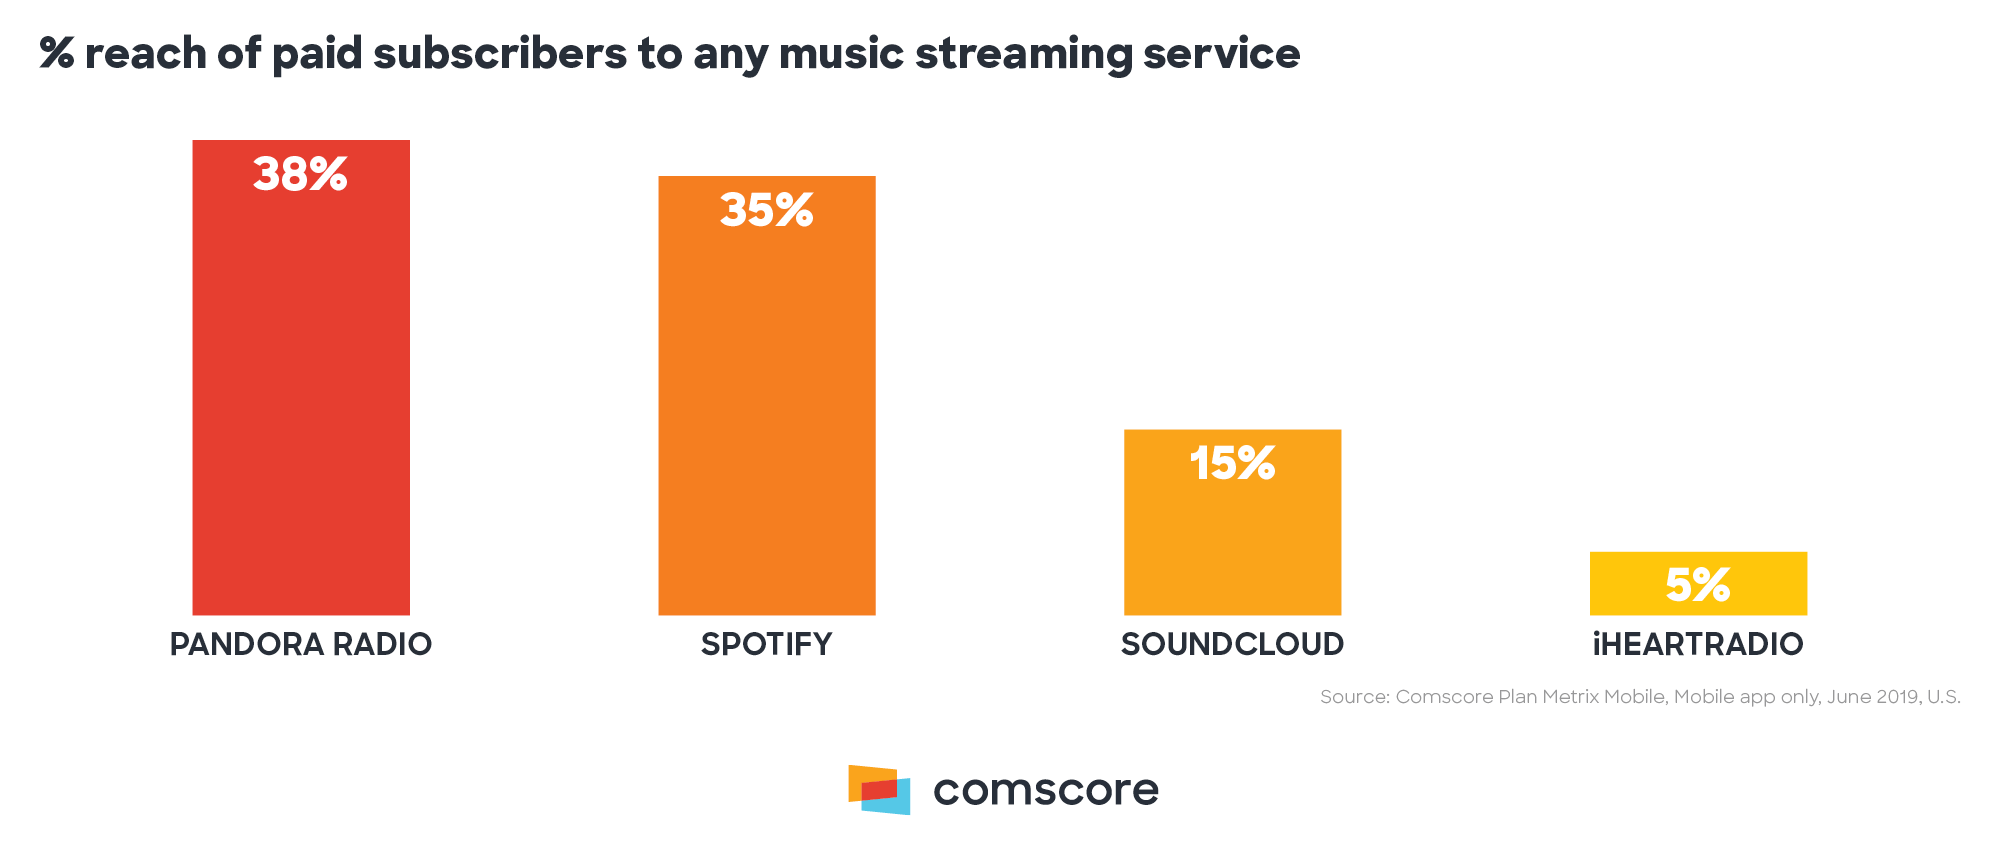 Percent Reach of Paid Subscribers to Any Music Streaming Service